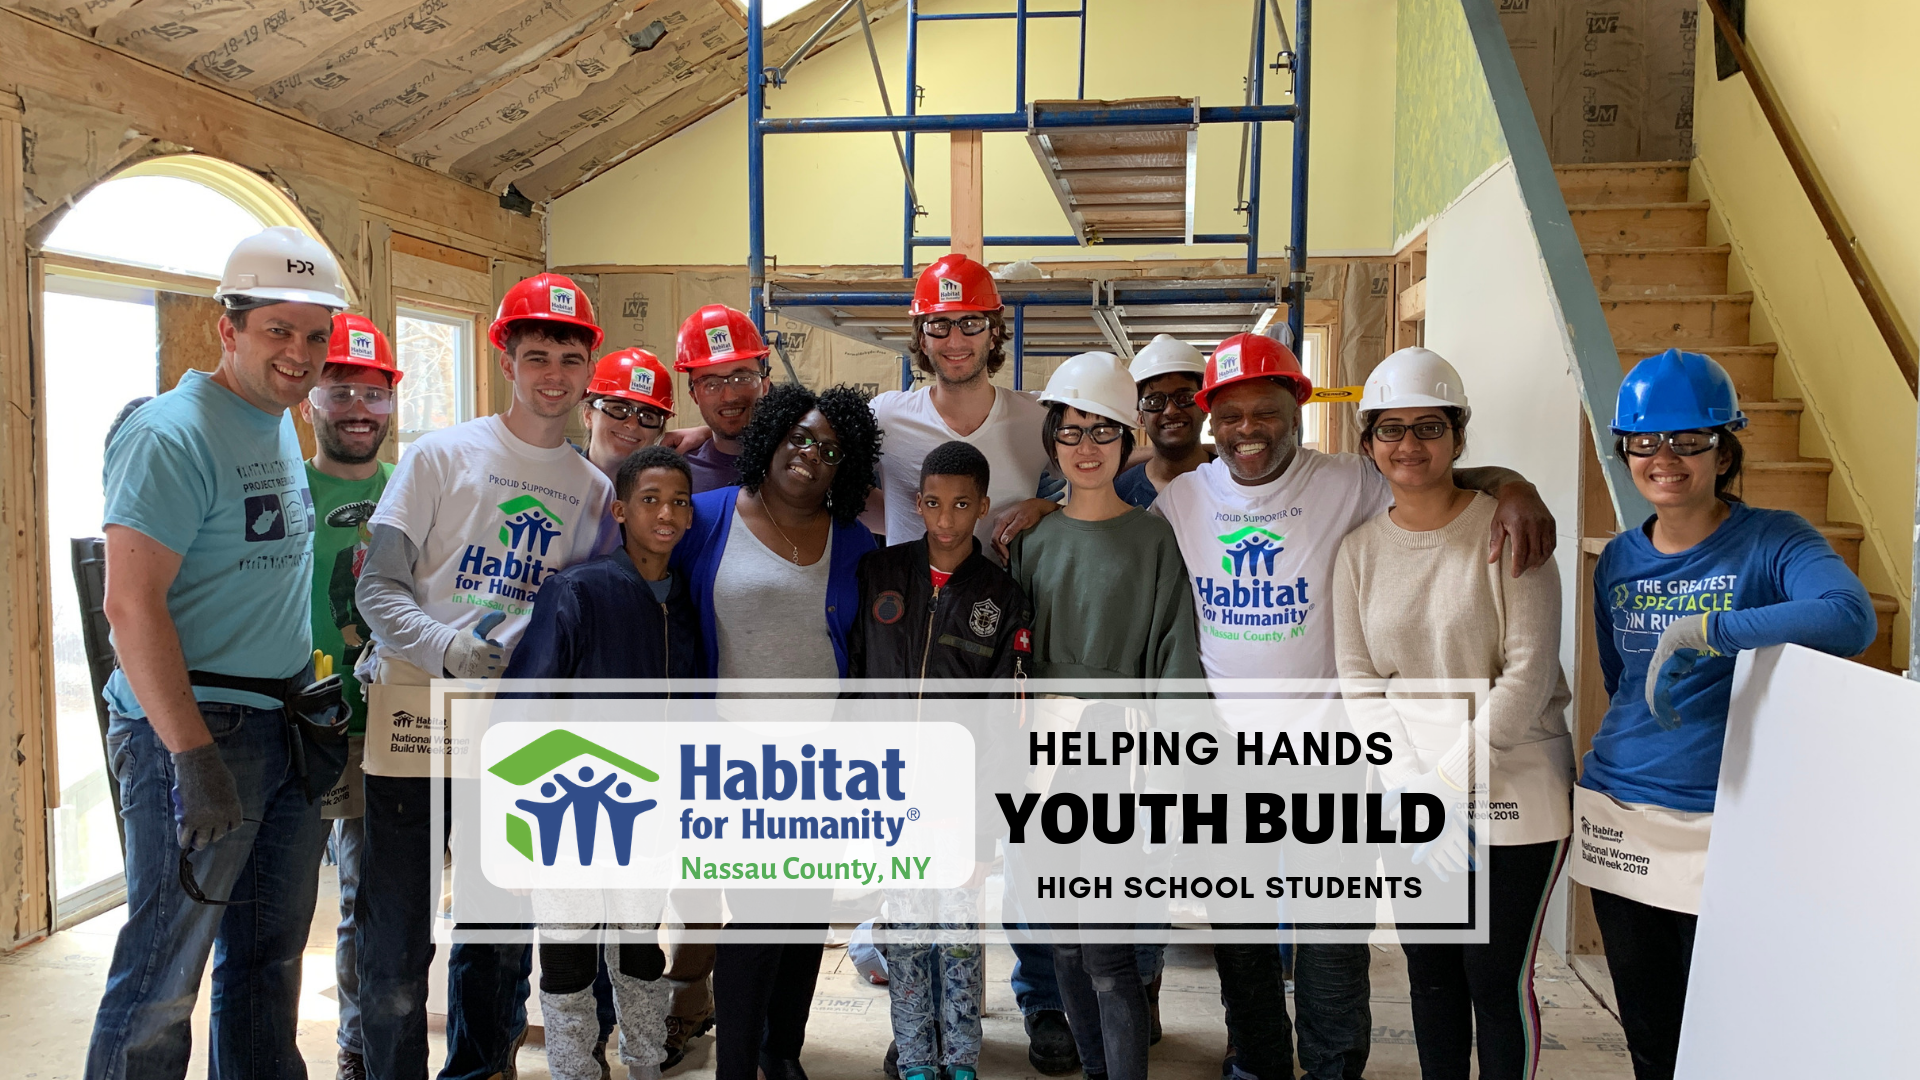 Helping Hands Youth Build, High School Students